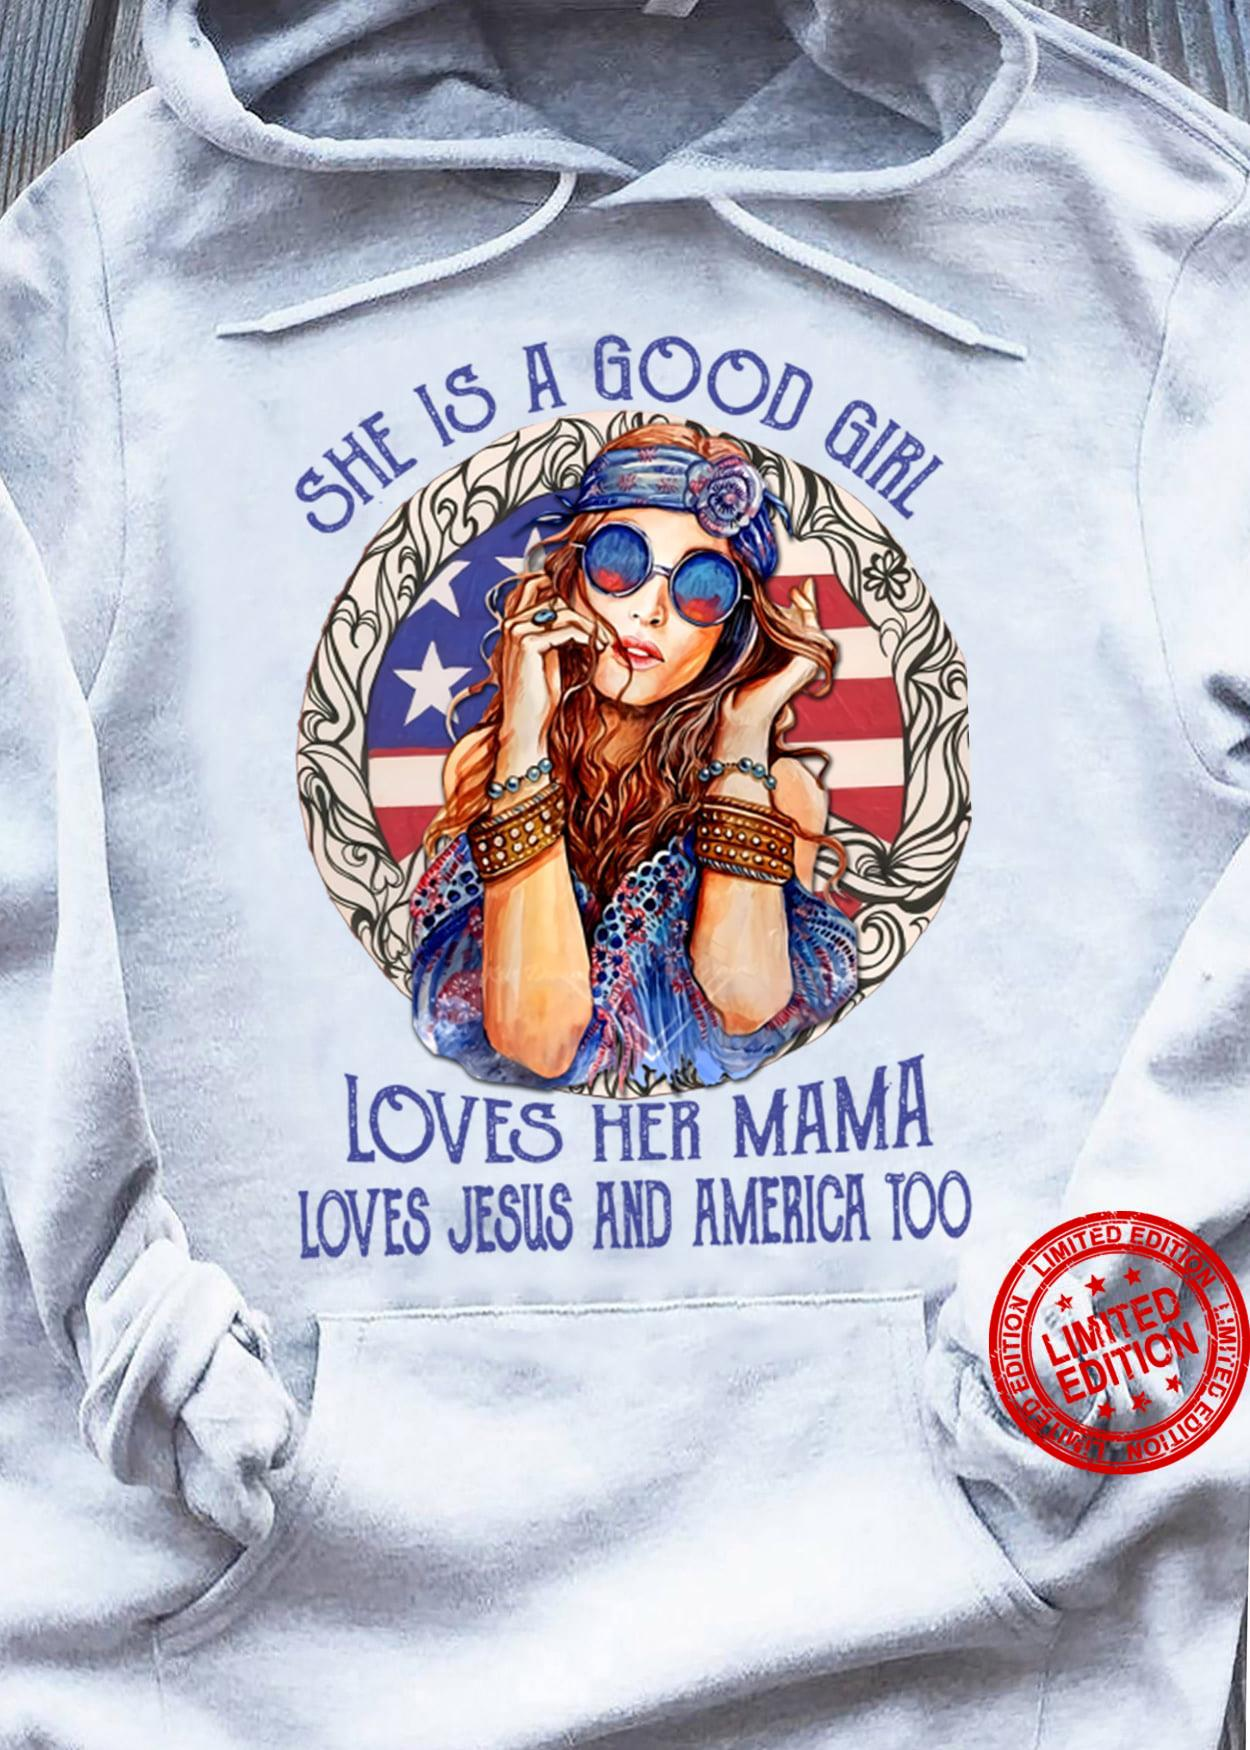 She Is A Good Girl Loves Her Mama Shirt